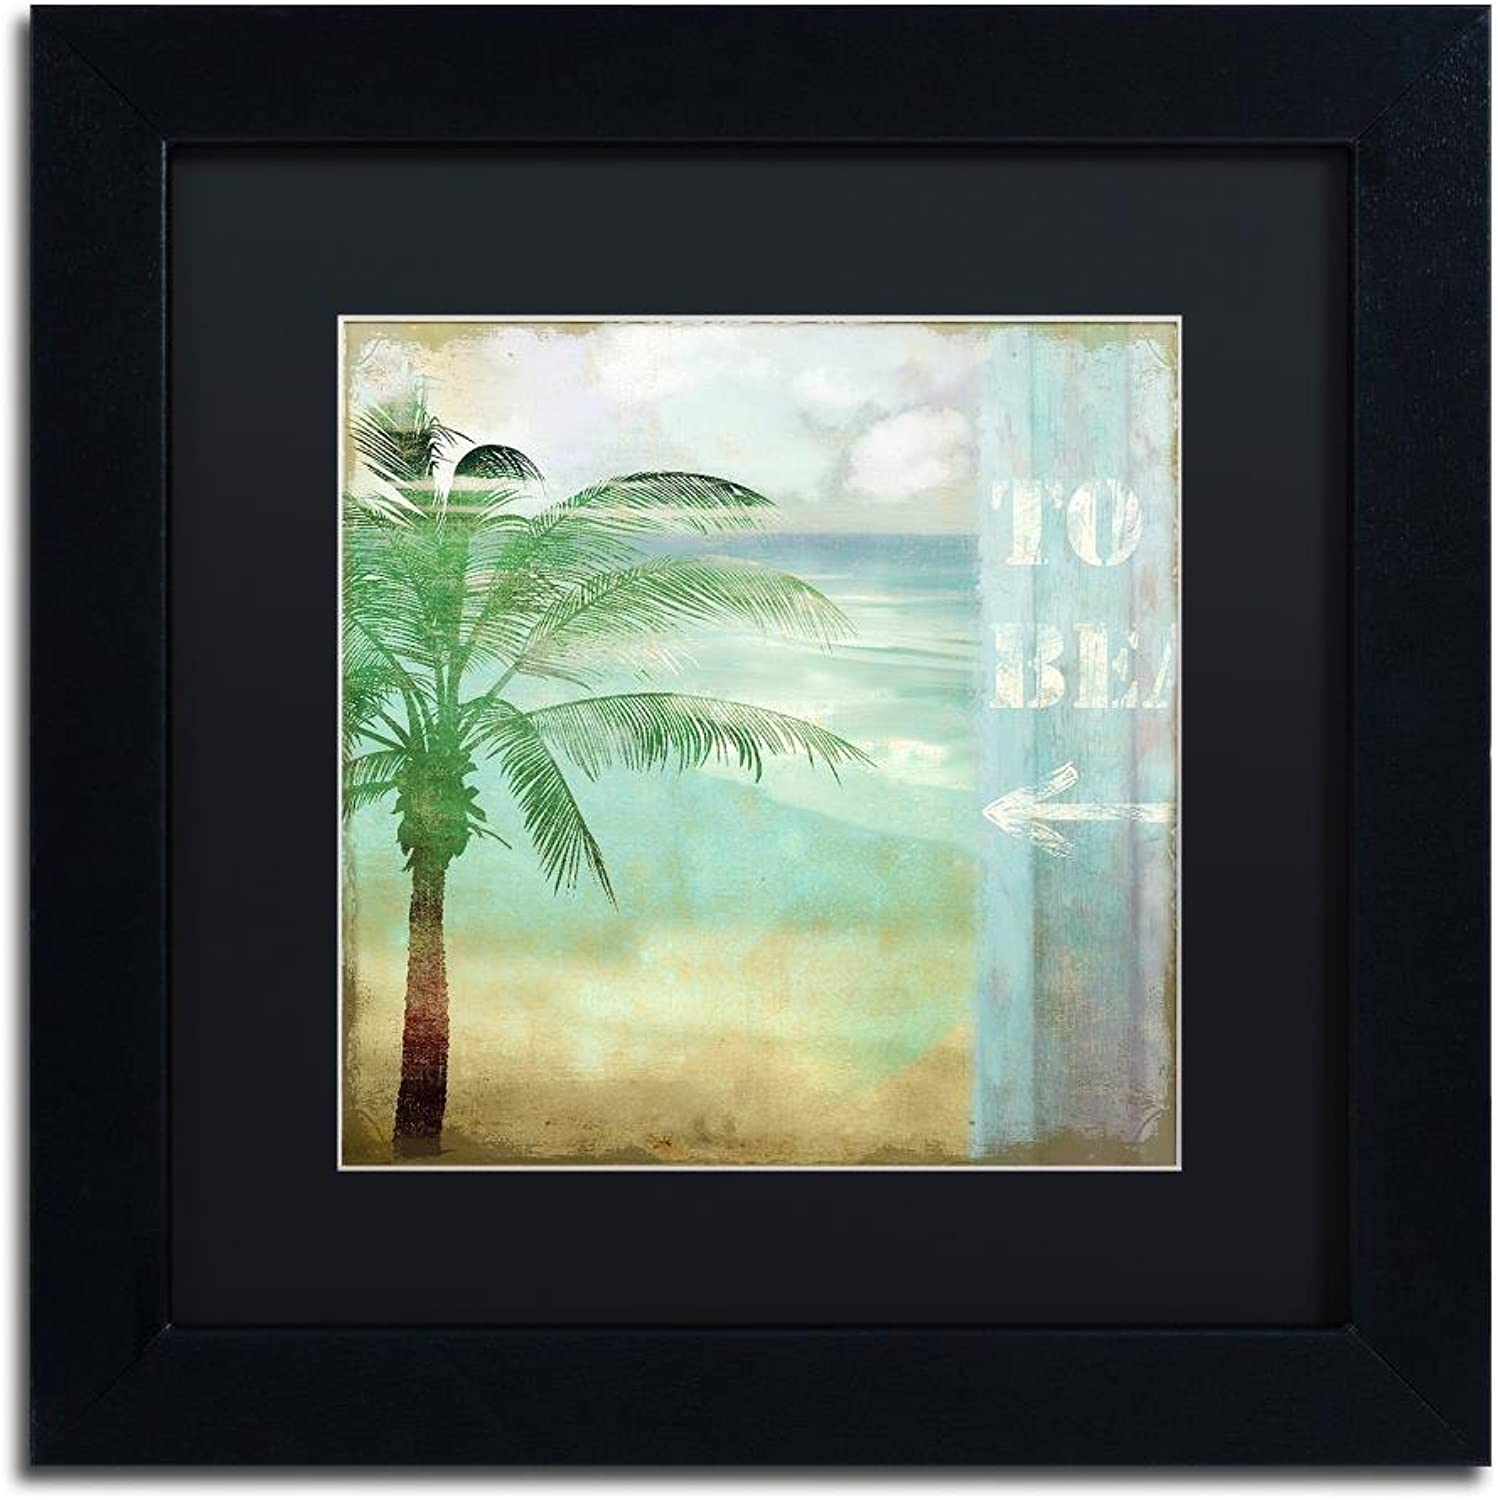 Trademark Fine Art by The Sea III by color Bakery, Black Matte, Black Frame 11x11, Wall Art